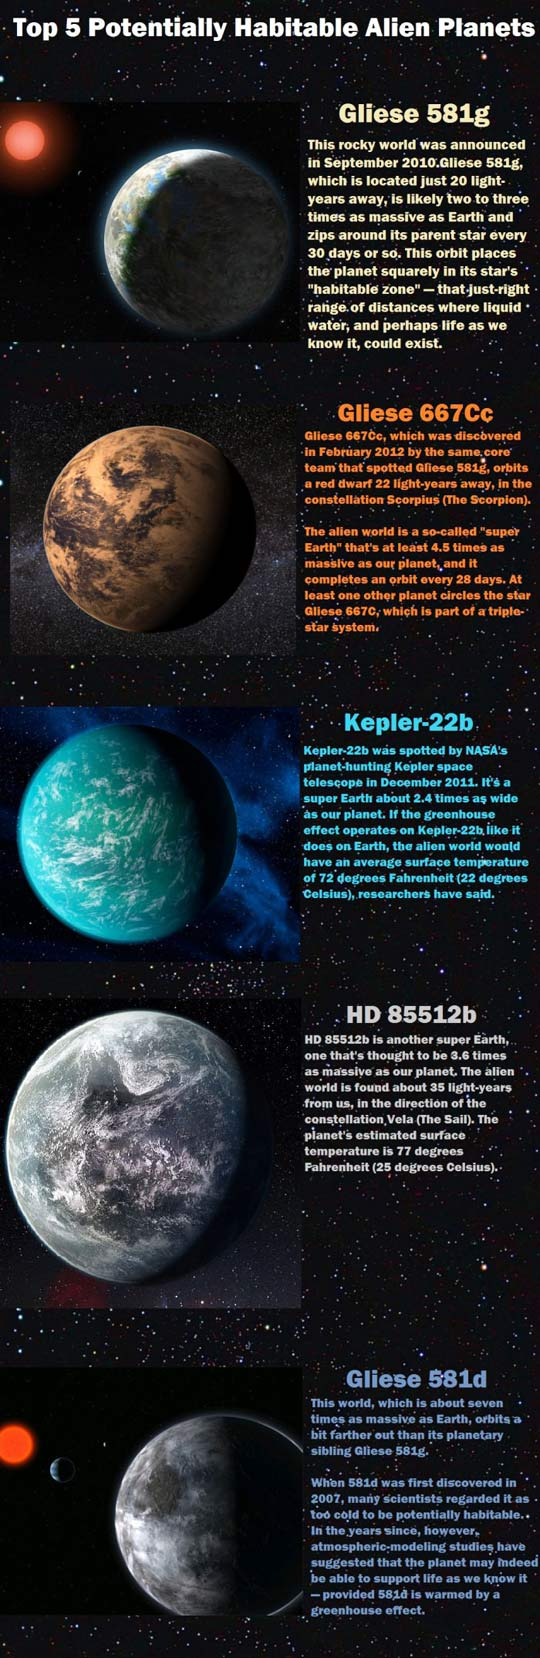 planets-like-Earth-space-habitable